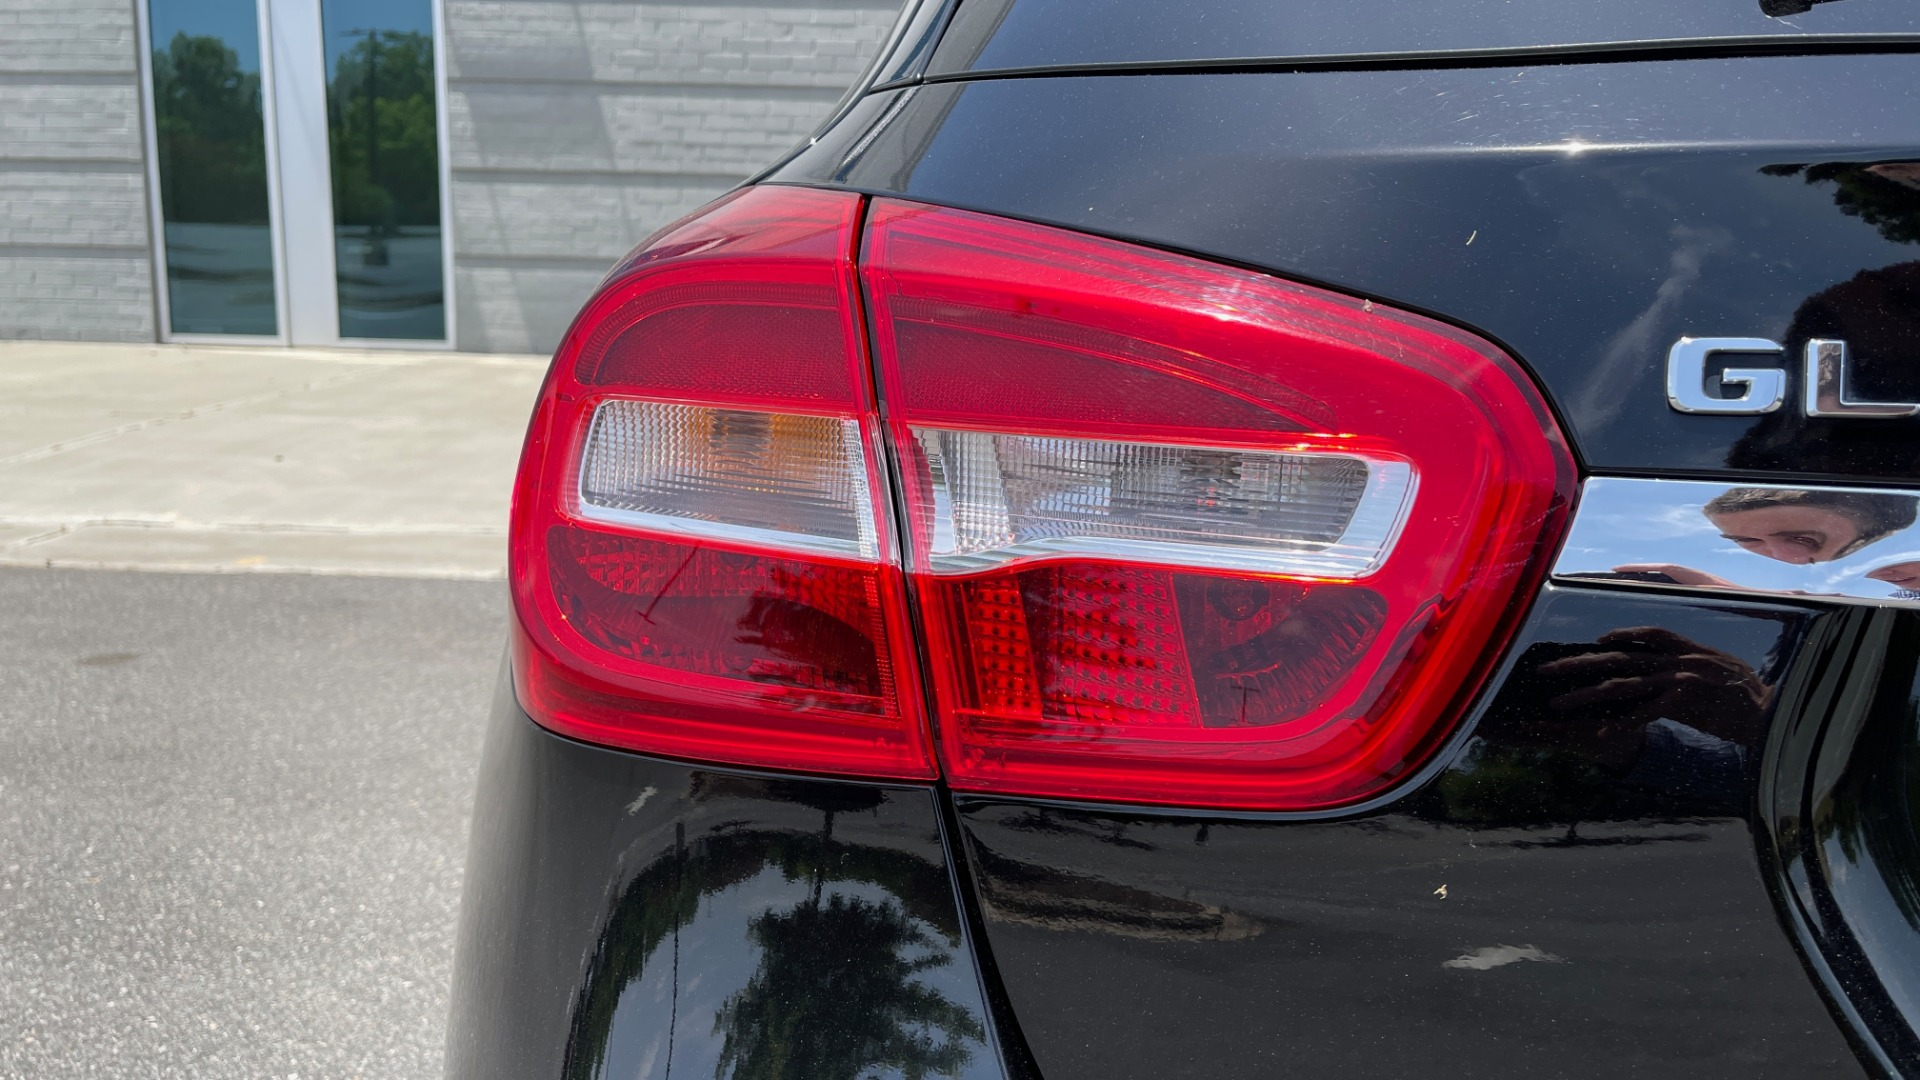 Used 2018 Mercedes-Benz GLA 250 4MATIC SUV / PANO-ROOF / HTD STS / BLIND SPOT ASST / APPLE for sale $31,995 at Formula Imports in Charlotte NC 28227 23